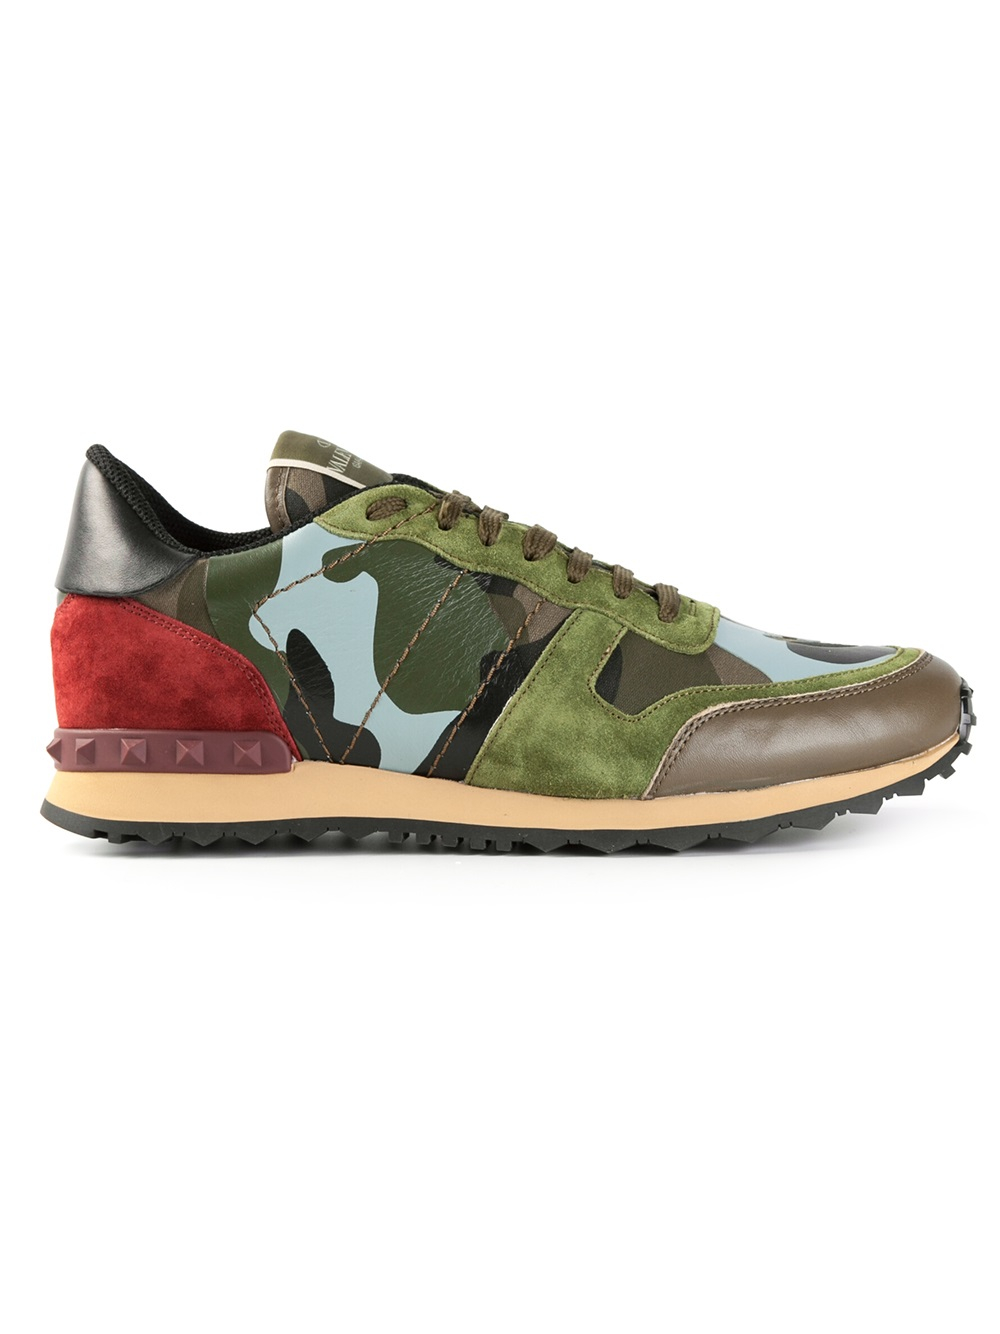 lyst valentino camouflage sneakers in green for men. Black Bedroom Furniture Sets. Home Design Ideas